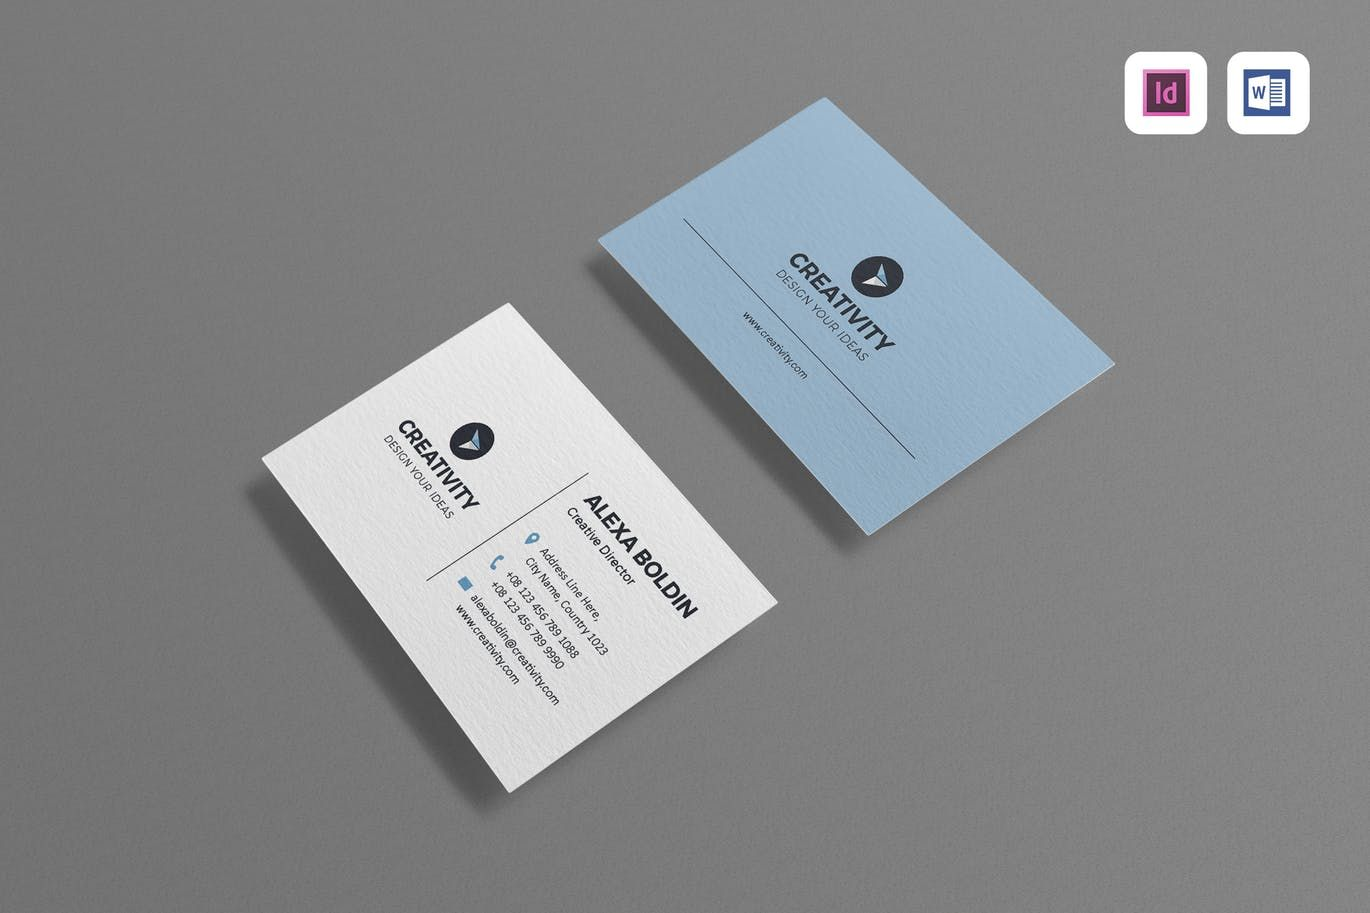 Business card template indesign indd ms word business card business card template indesign indd ms word flashek Image collections